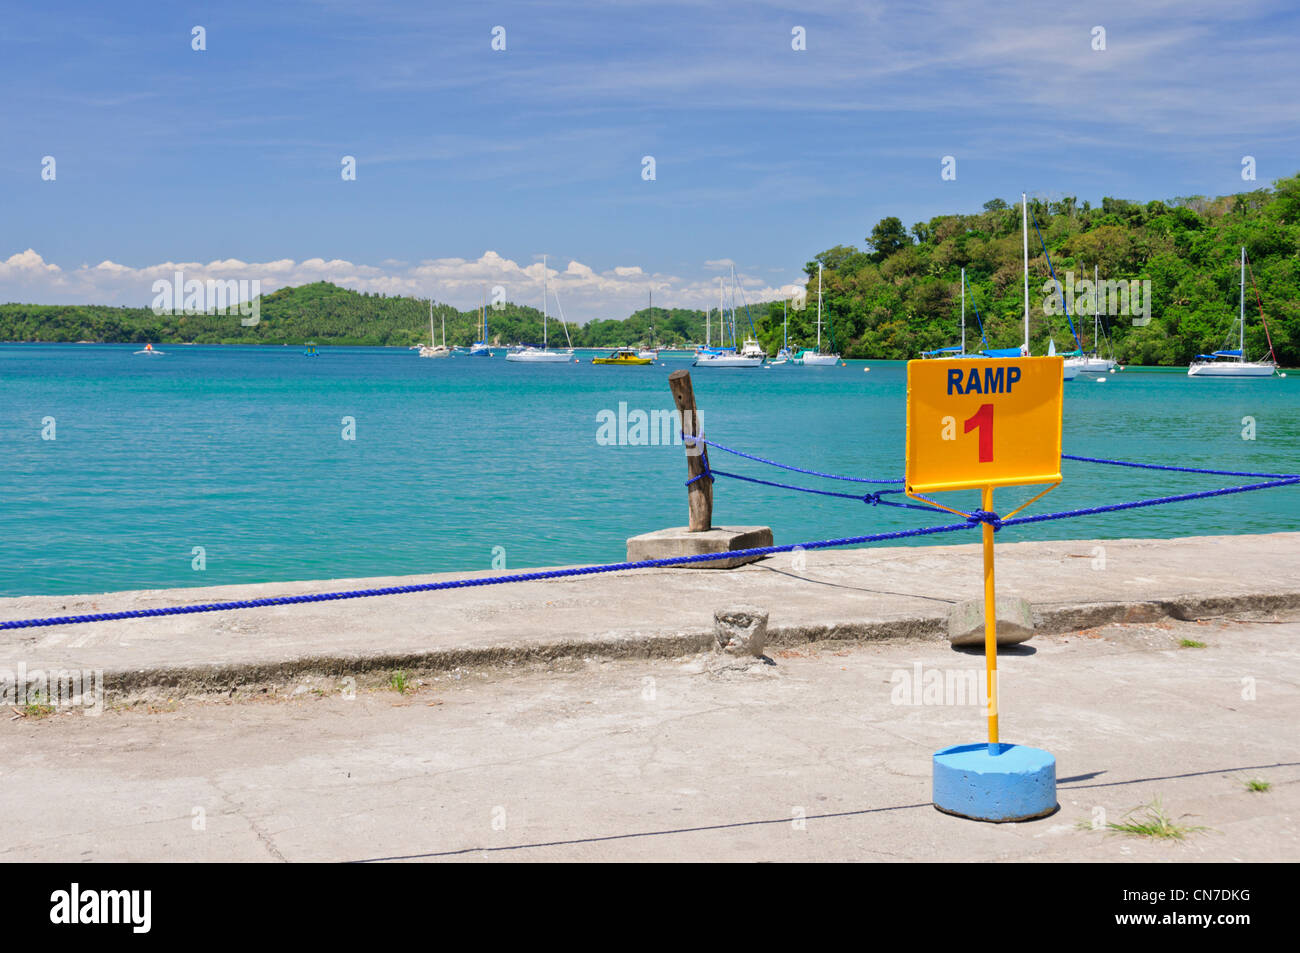 Muelle Pier, Puerto Galera Bay, Oriental Mindoro, Philippines, Southeast Asia, blue ocean water sky, sailing yachts, sign Ramp 1 Stock Photo